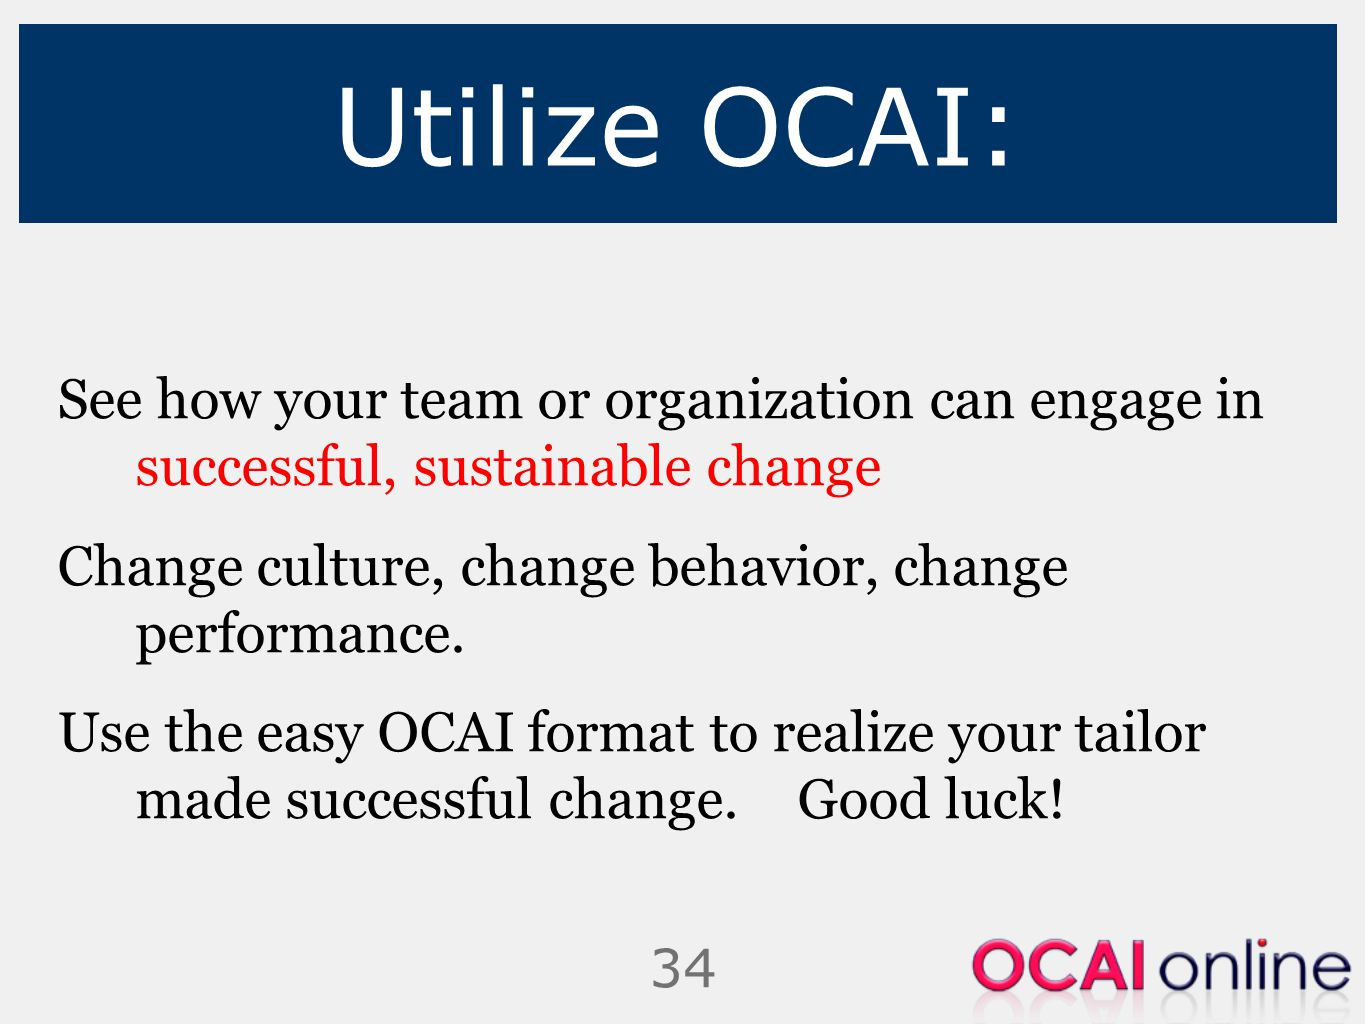 Utilize OCAI: See how your team or organization can engage in successful, sustainable change. Change culture, change behavior, change performance.